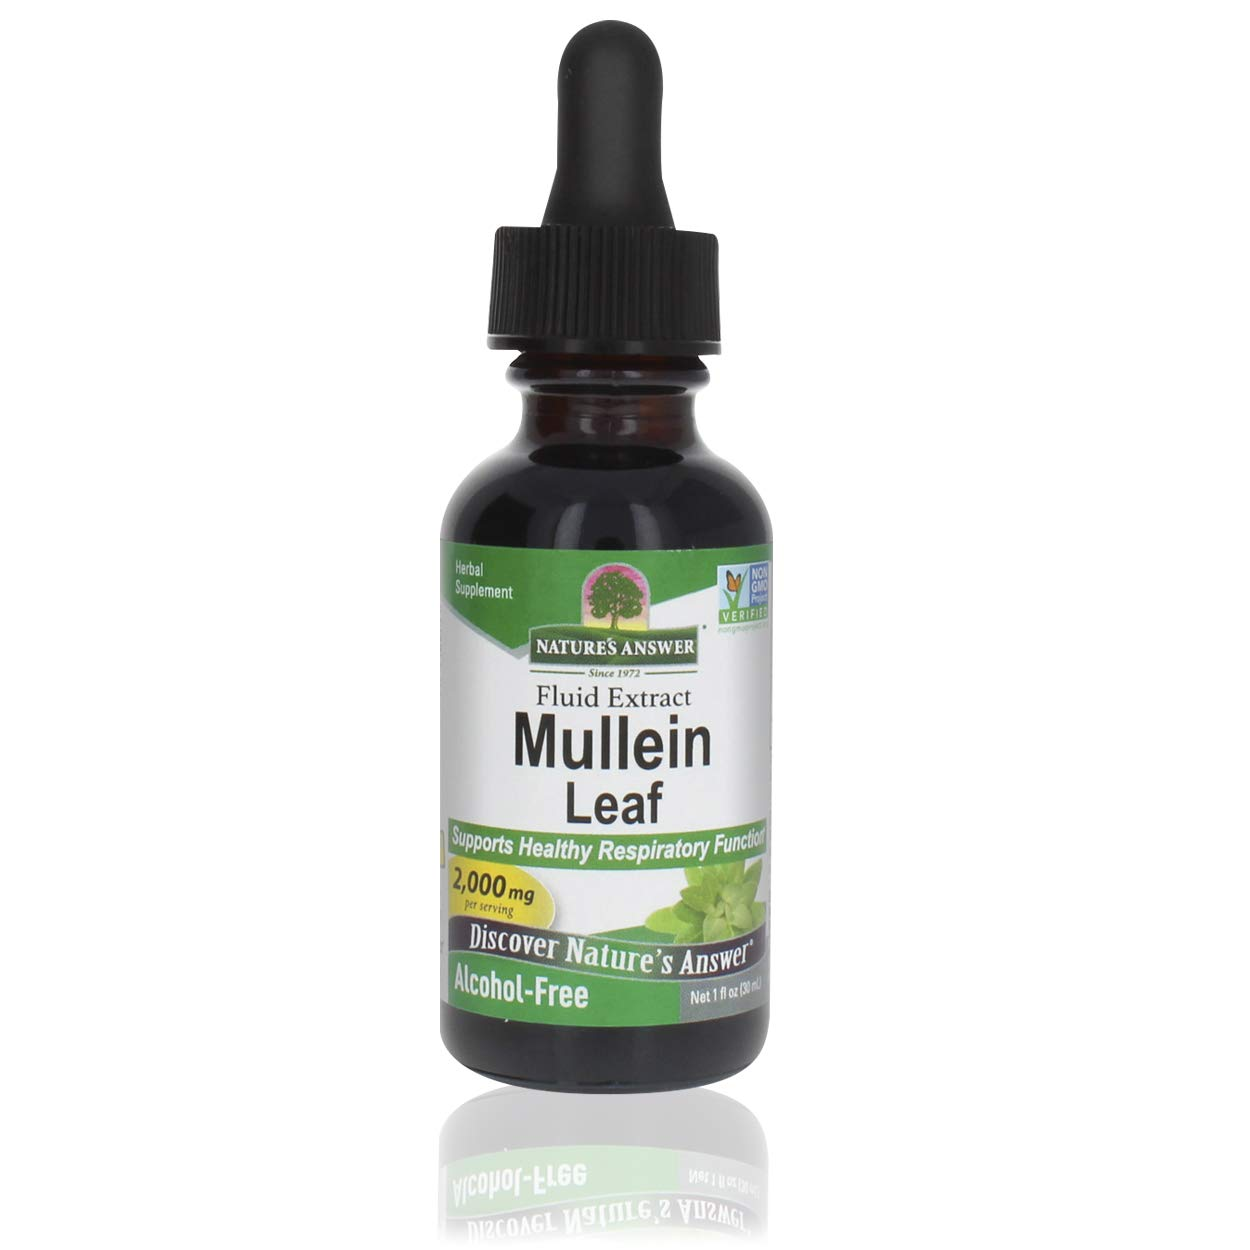 Nature's Answer Mullein Leaf | Herbal Supplement | Supports Healthy Respiratory Function & Healthy Mucous Membranes | Non-GMO & Kosher | Gluten-Free & Alcohol-Free 1oz (2 Pack)